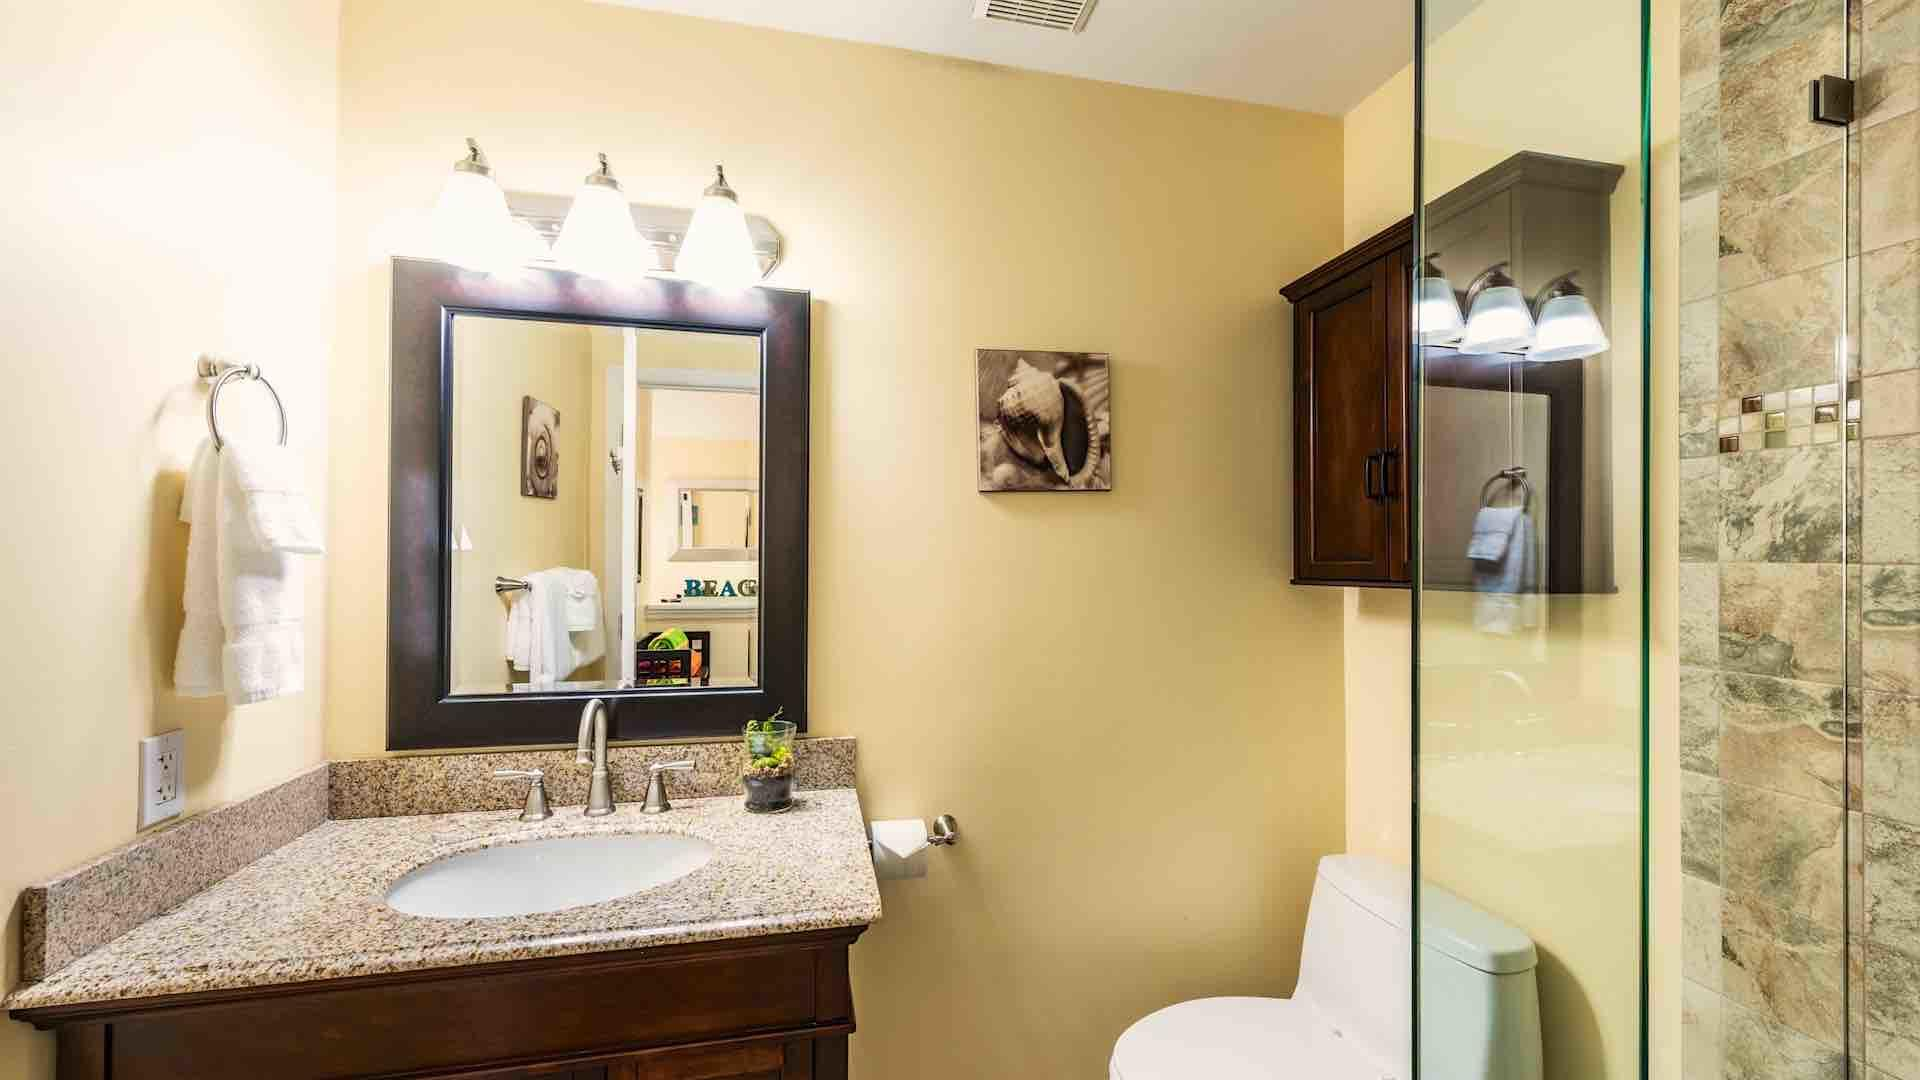 The bathroom is located in the hall between the two bedrooms...